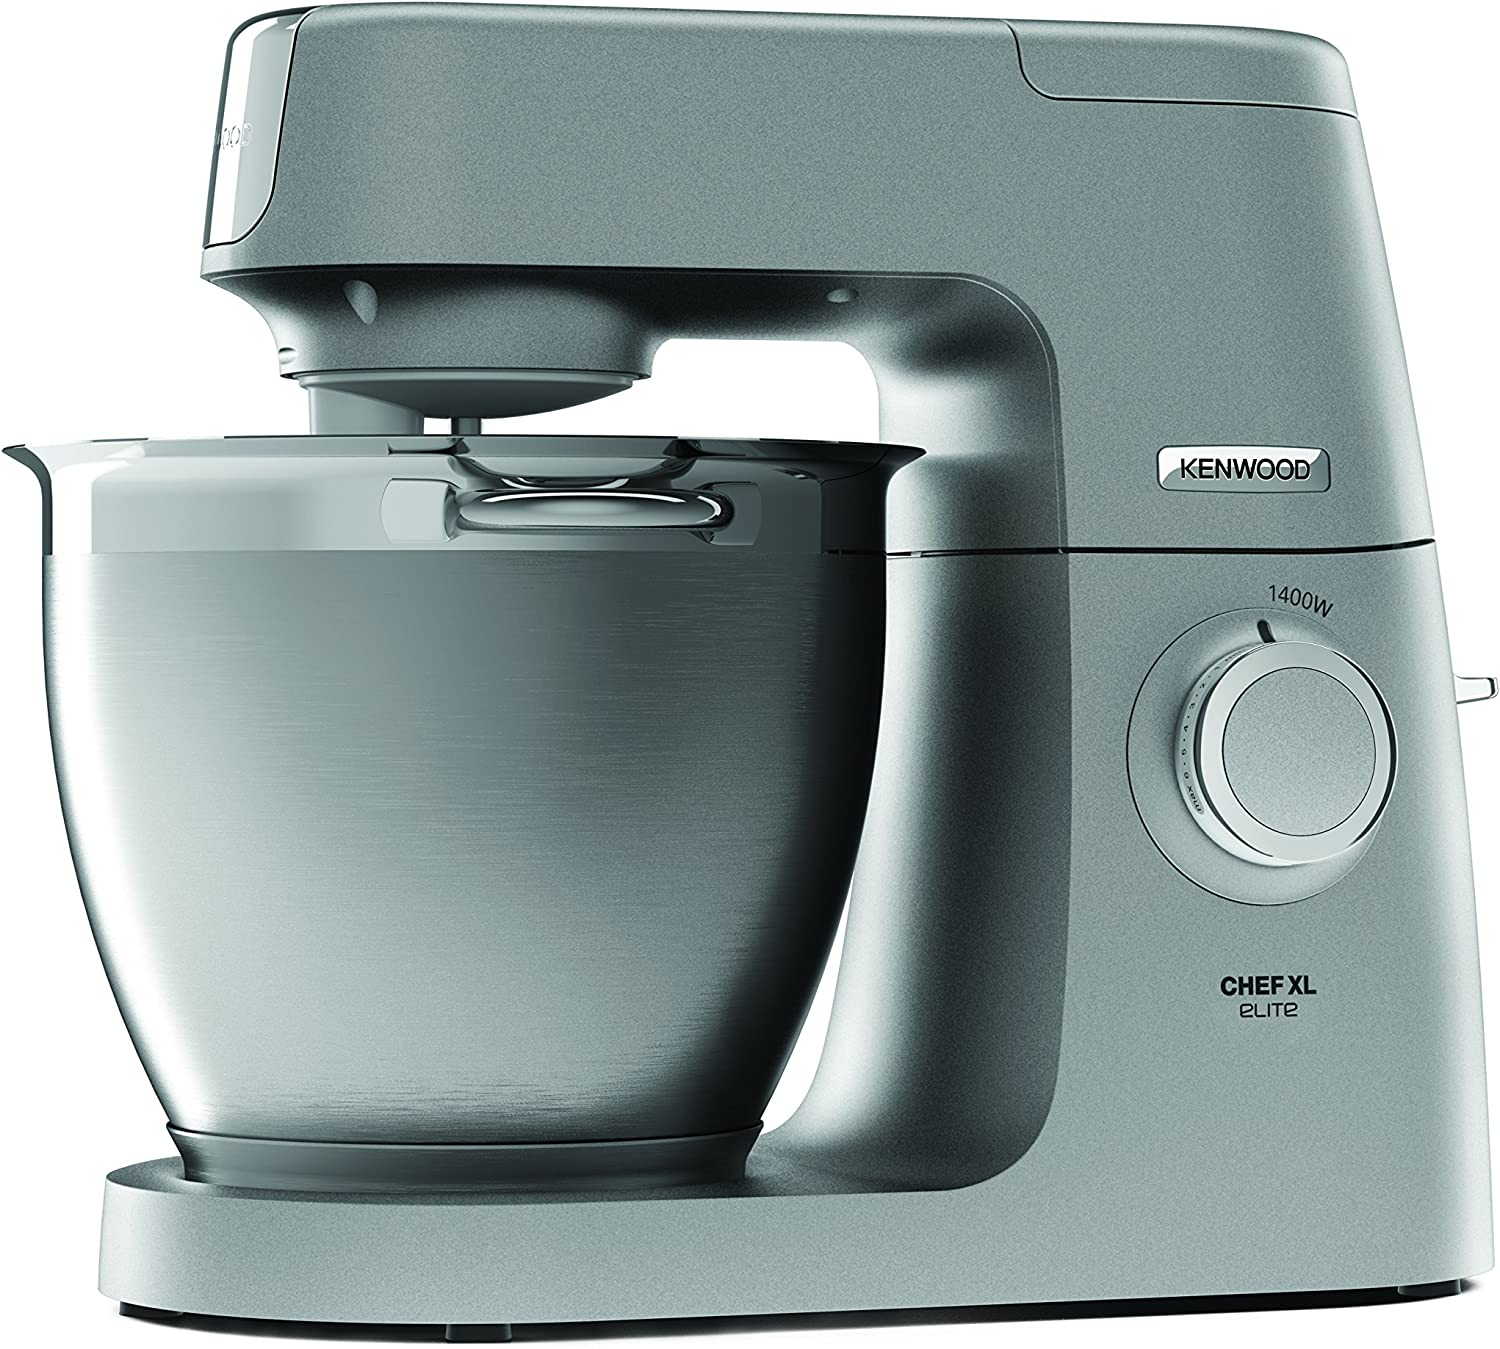 Kenwood KVL6330S Kitchen Machine Chef Elite, plata